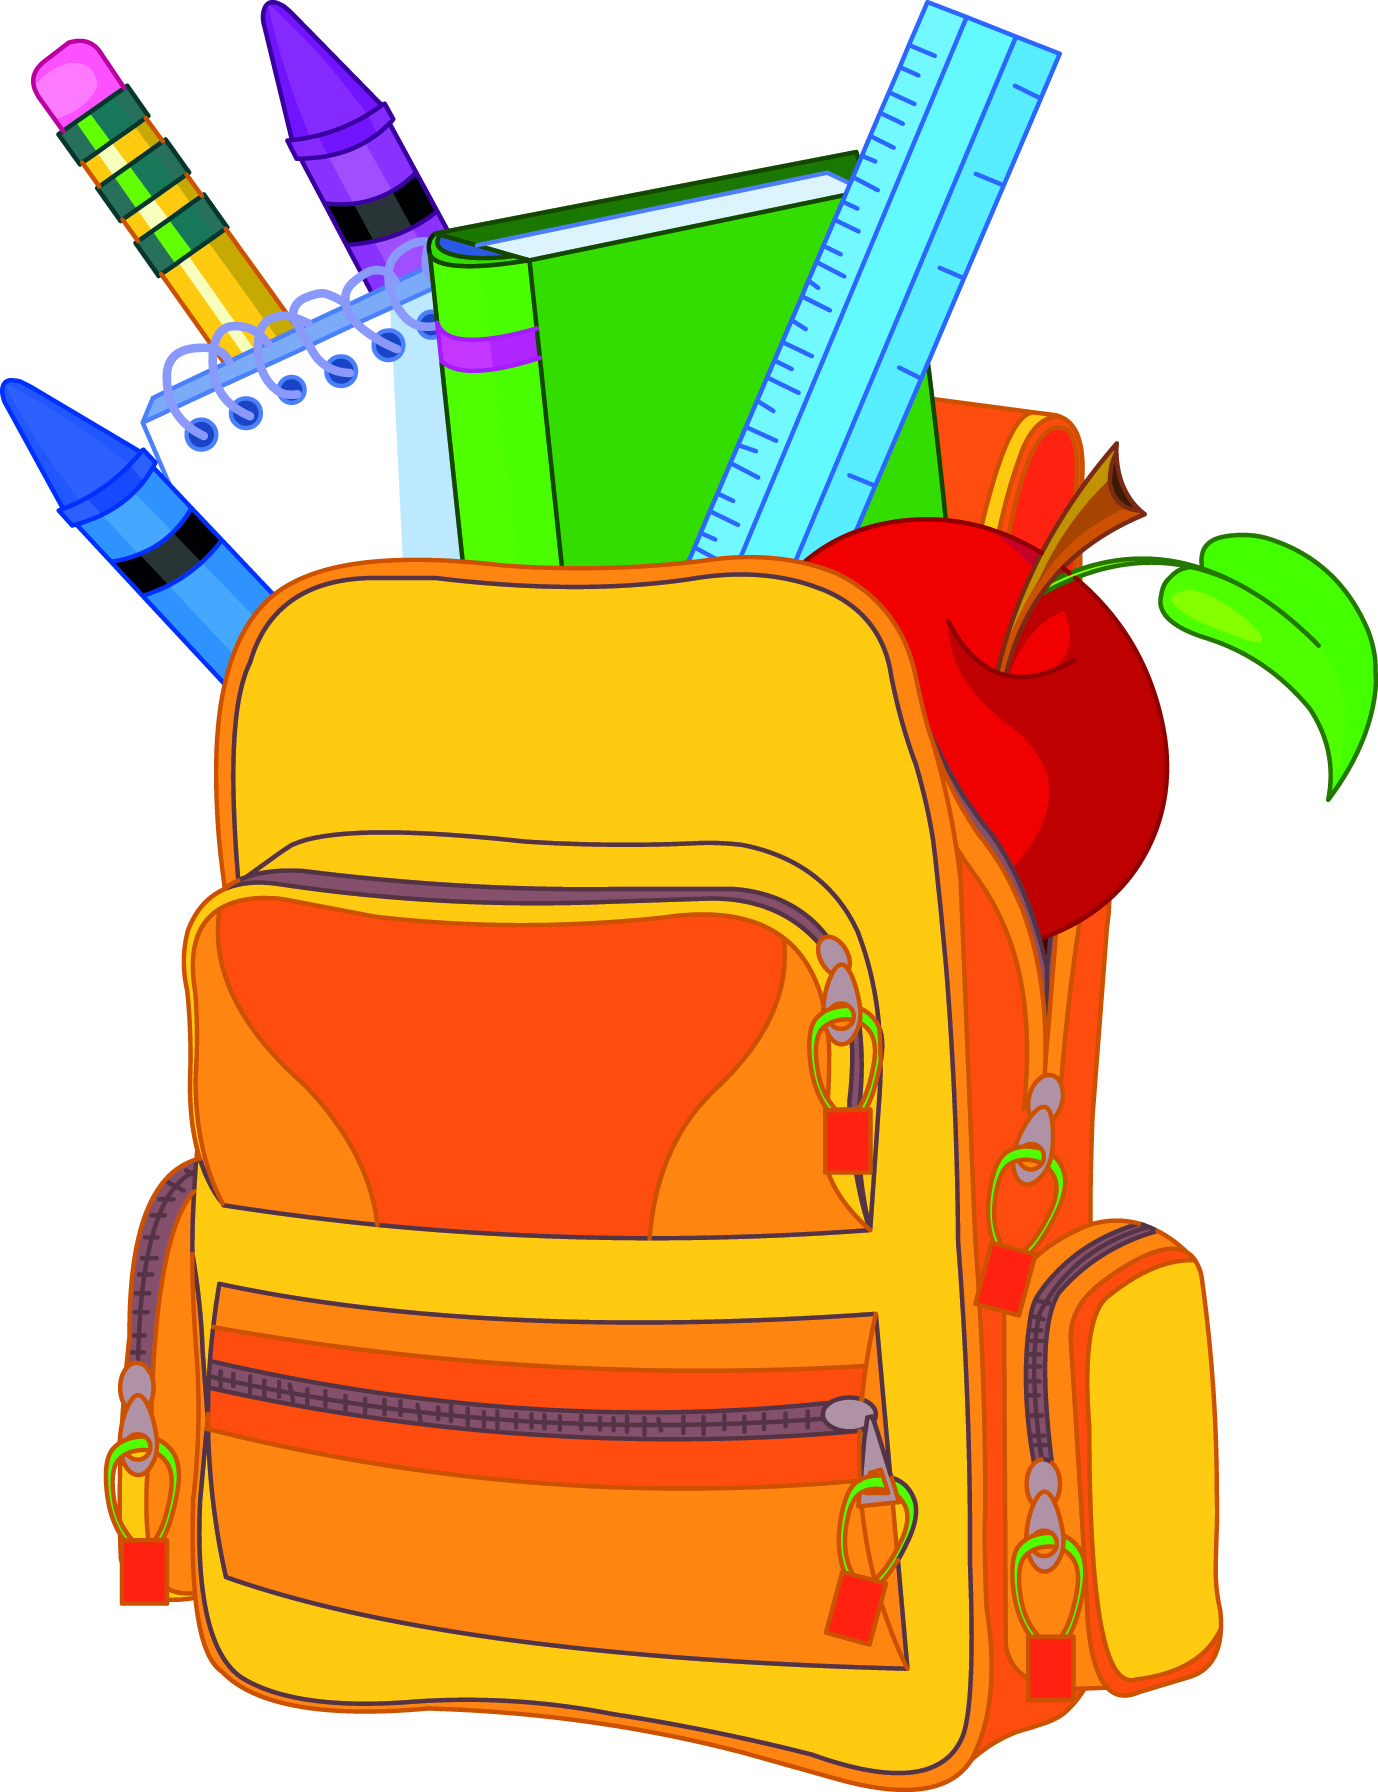 Jpg heaps of. Bag clipart homework